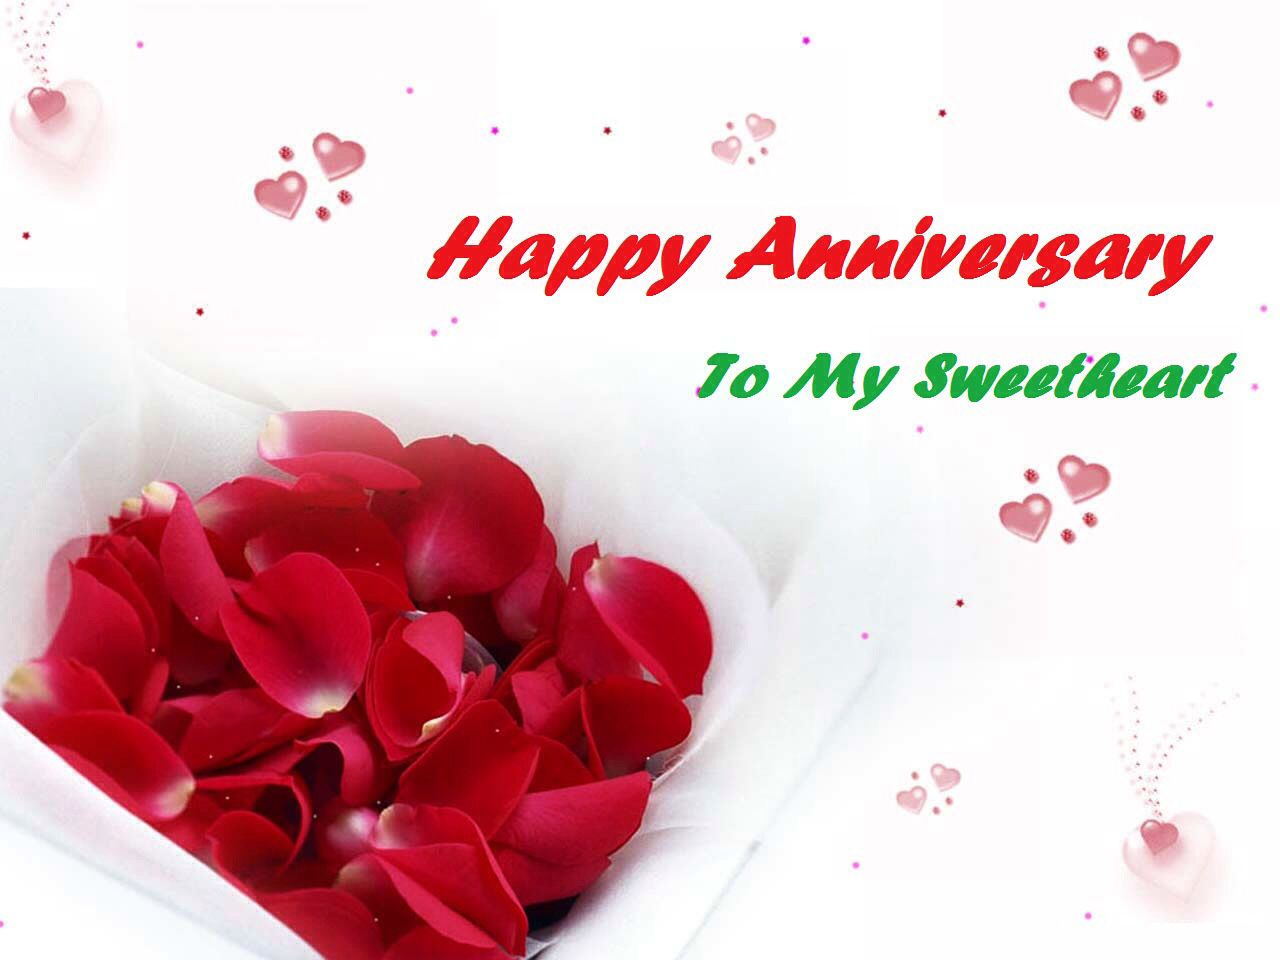 your significant other happy anniversary love happy wedding anniversary pics cards sayings wedding anniversary quotes happy anniversary images hd tamil